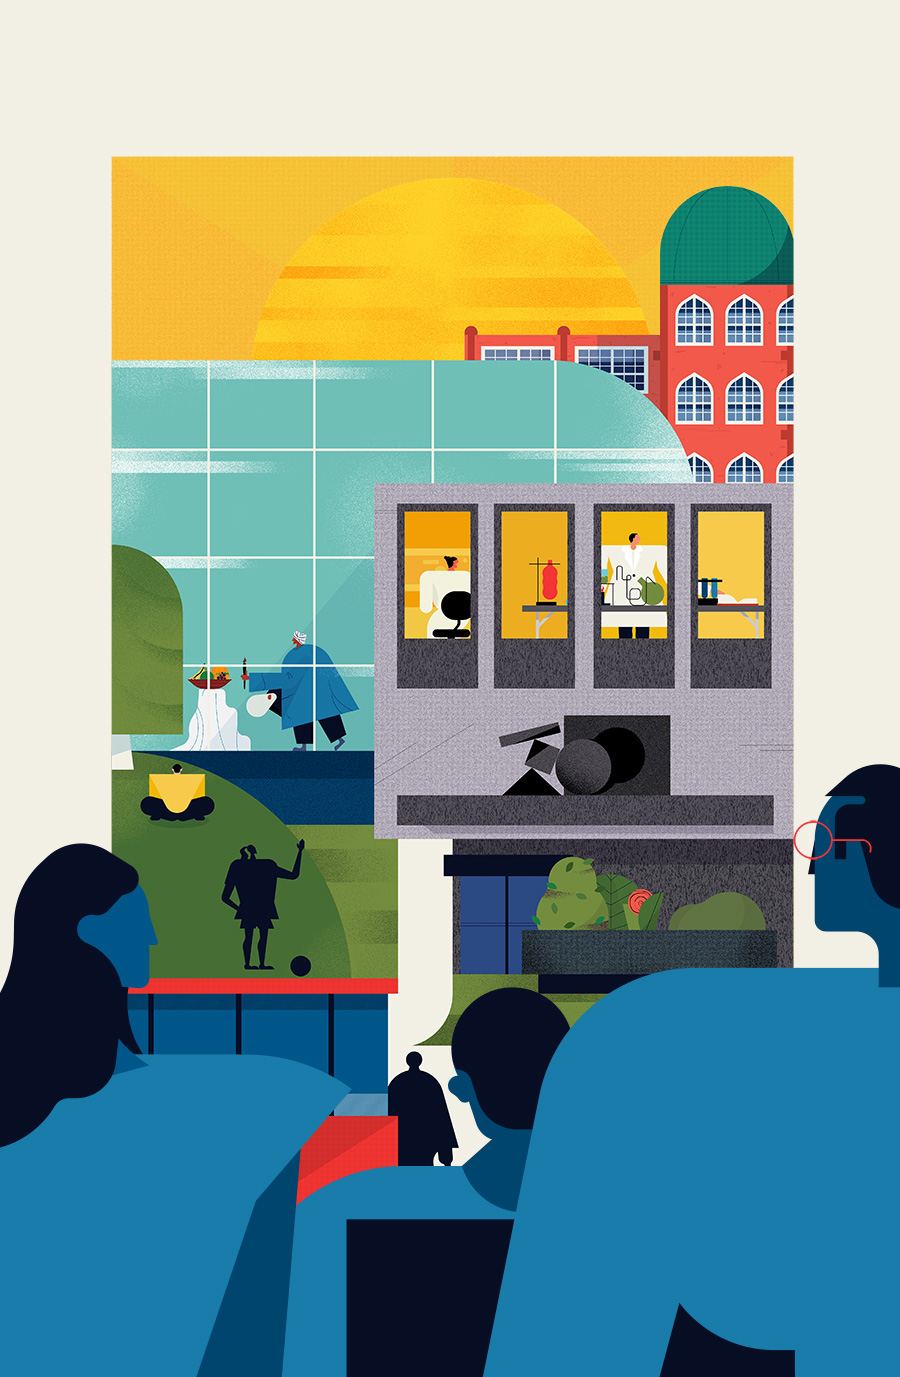 adam avery illustration the guardian university guide group of people looking at buildings